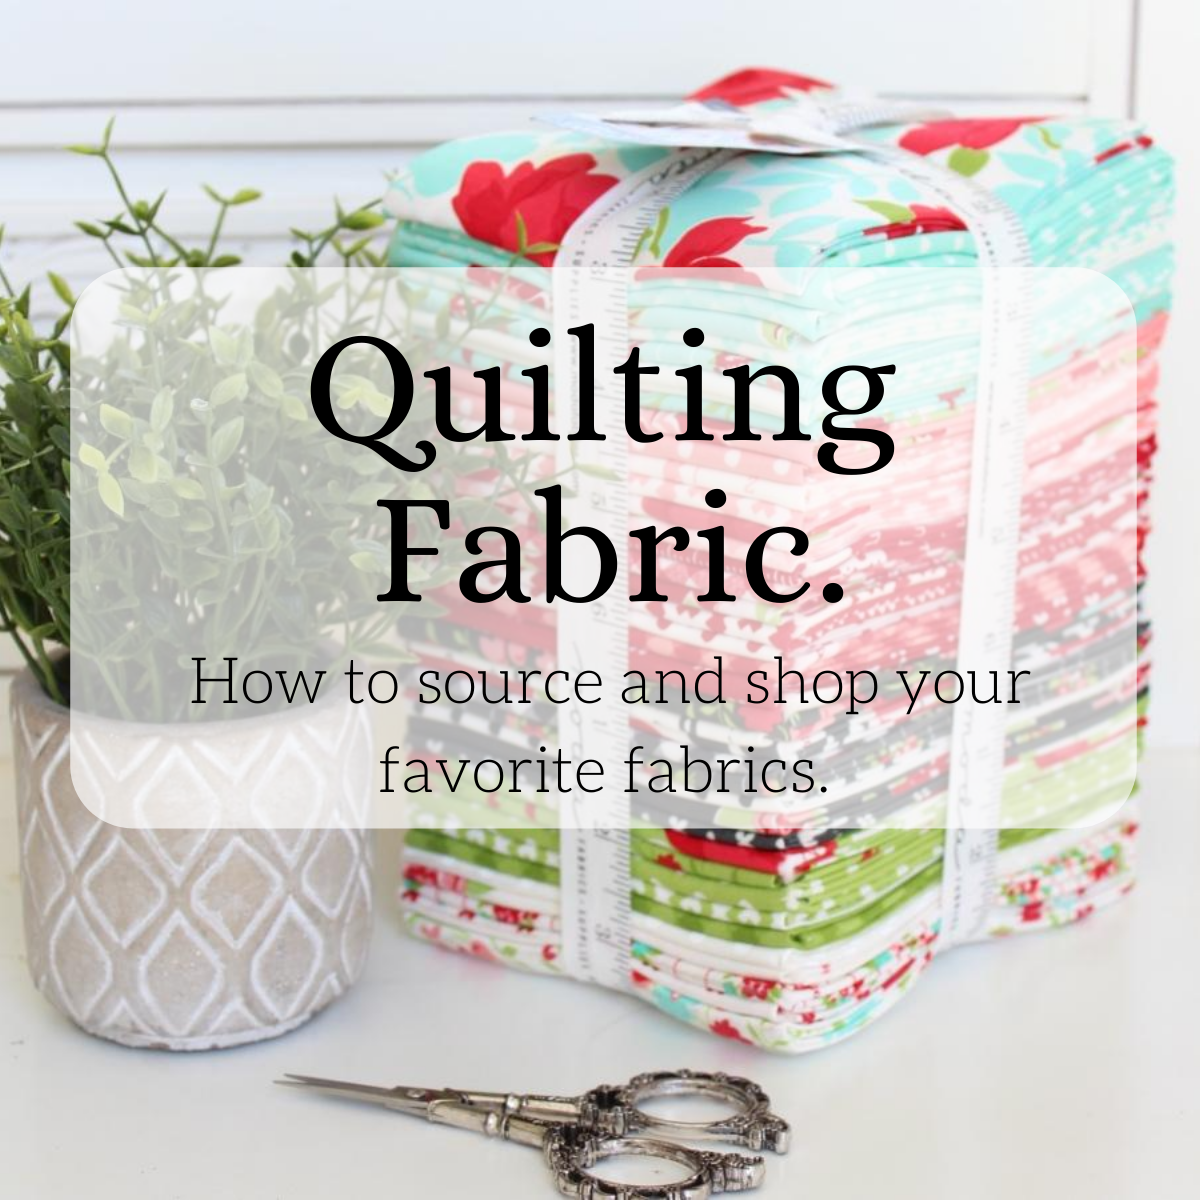 Quilting Fabrics - How To Source and Shop Your Favorite Fabrics.